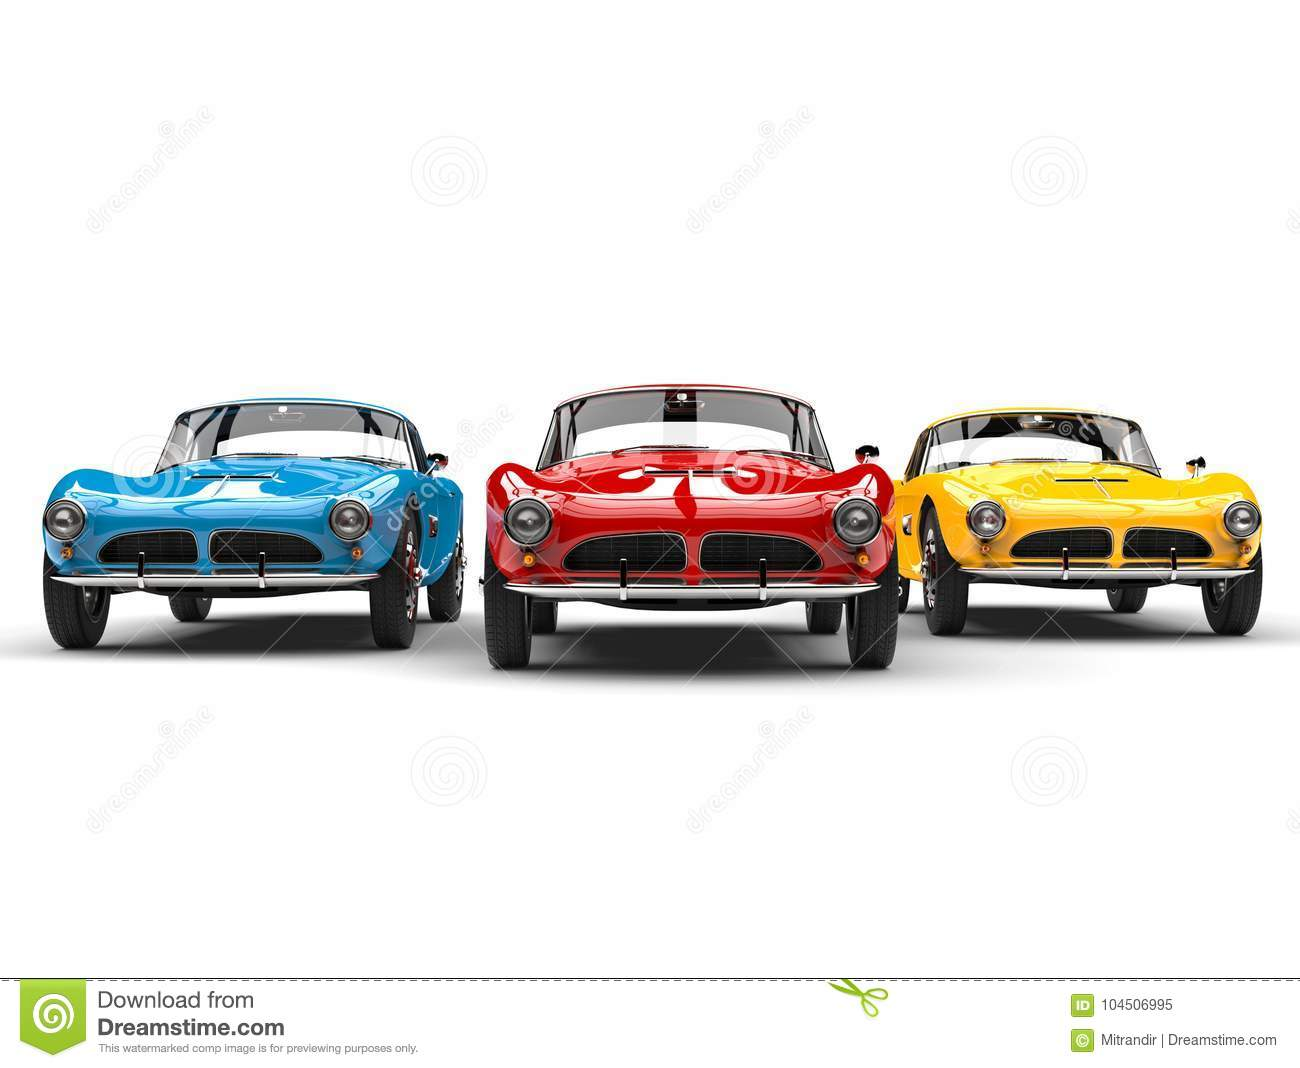 Stunning Vintage Sports Cars In Bright Red Blue And Yellow Colors